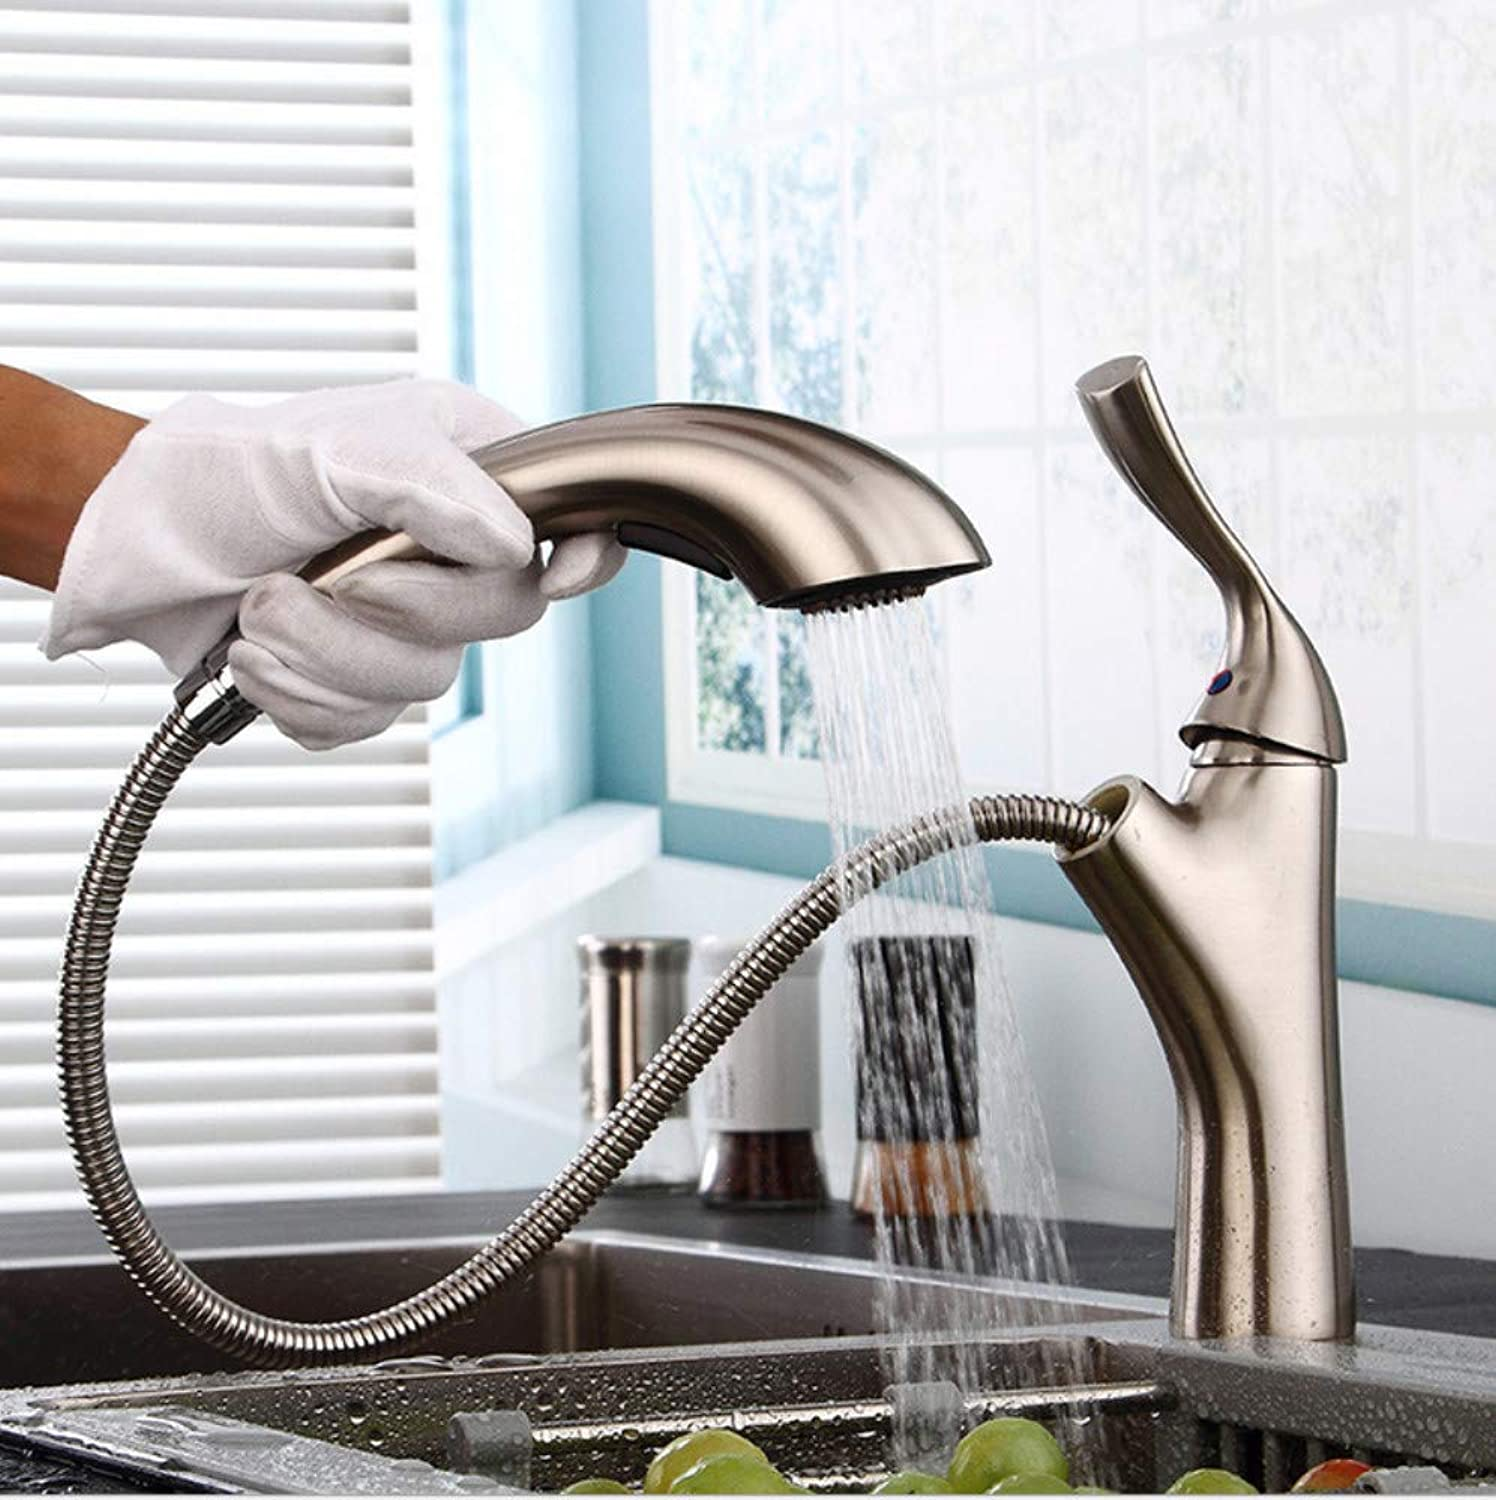 redOOY Copper classic kitchen and bathroom hardware faucet single-lift lifting mixer